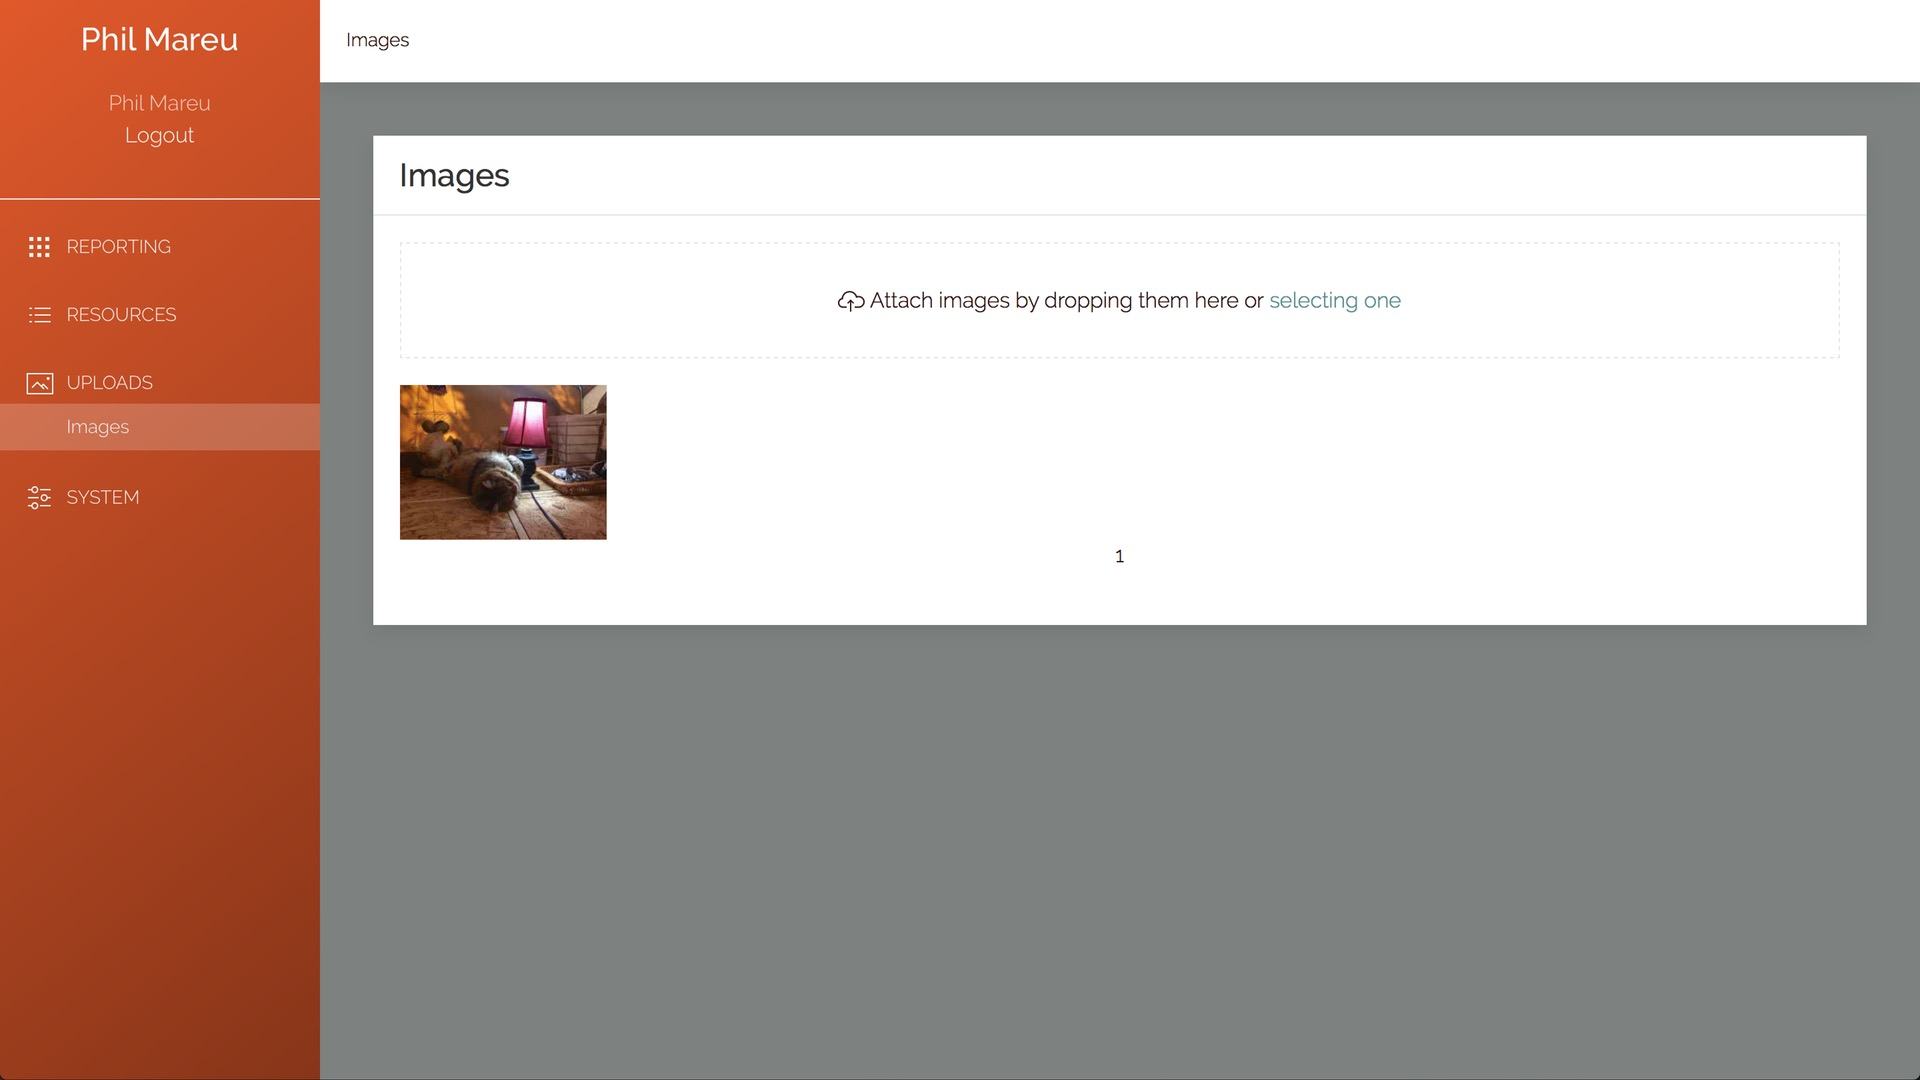 Image is show in gallery after it is uploaded